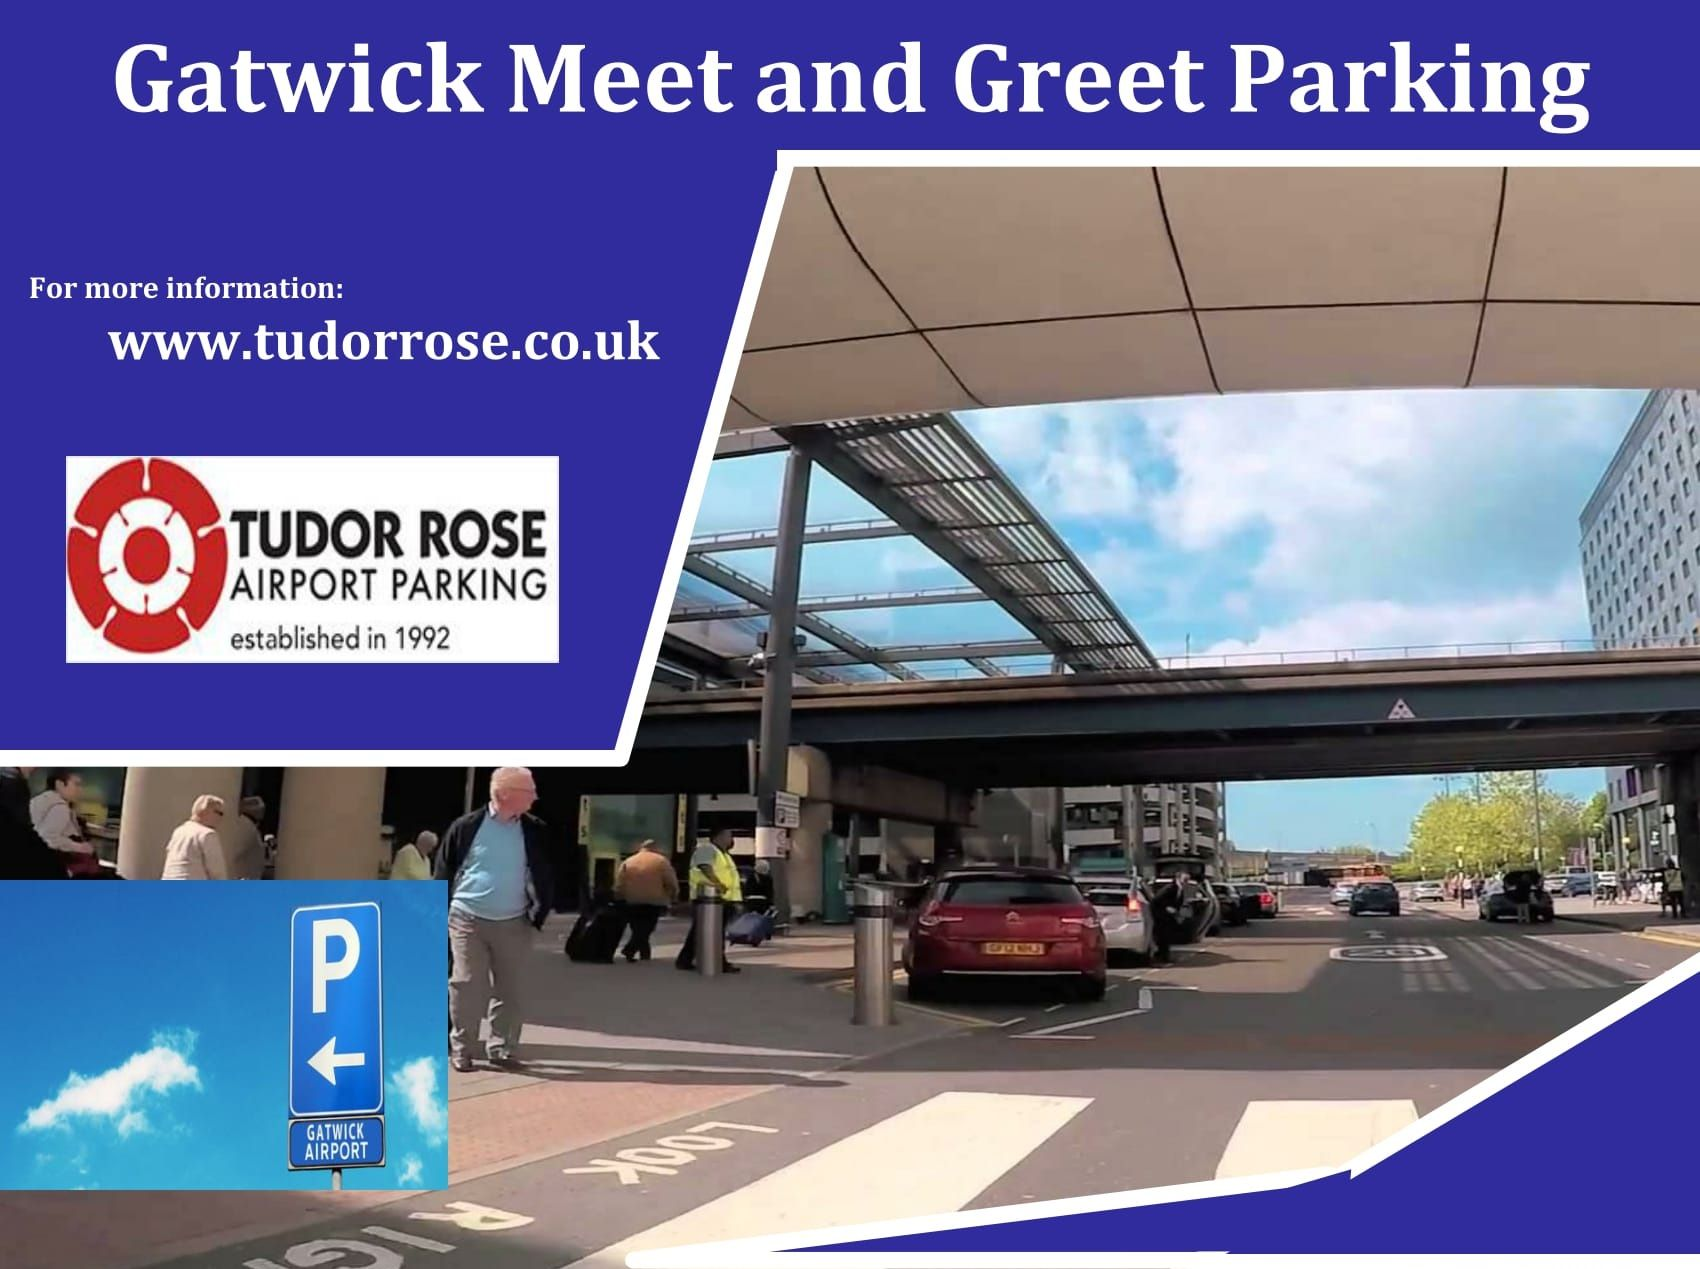 Tudor rose airport parking for more details please visit www tudor rose airport parking for more details please visit tudorrose car parking gatwick airport pinterest kristyandbryce Images